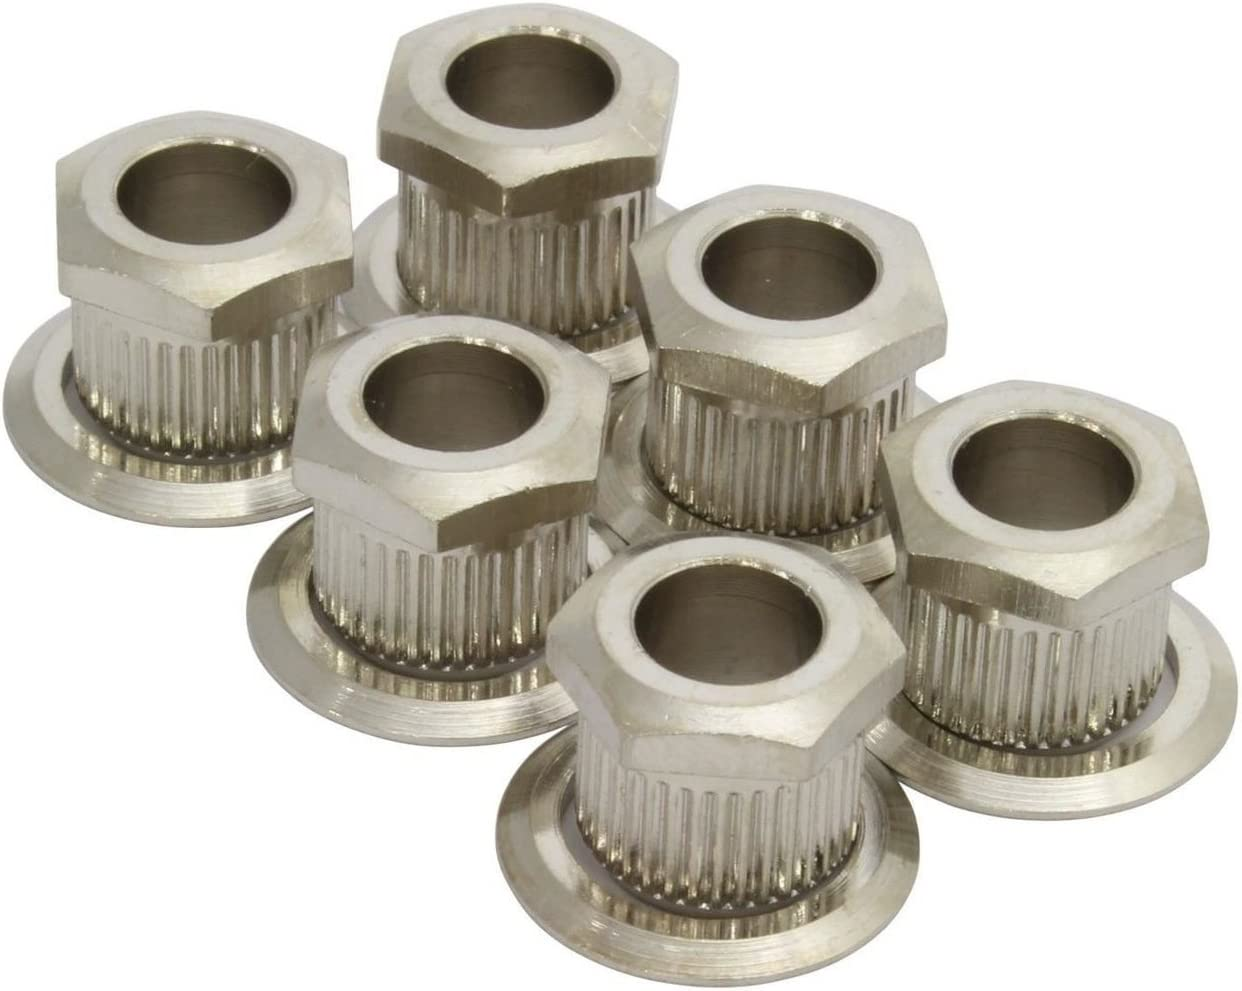 FarBoat Hardware 0.5 Dia Wing Nuts Silver Carbon Steel Butterfly Nuts Fasteners Parts Zinc Plated Surface Pack of 20